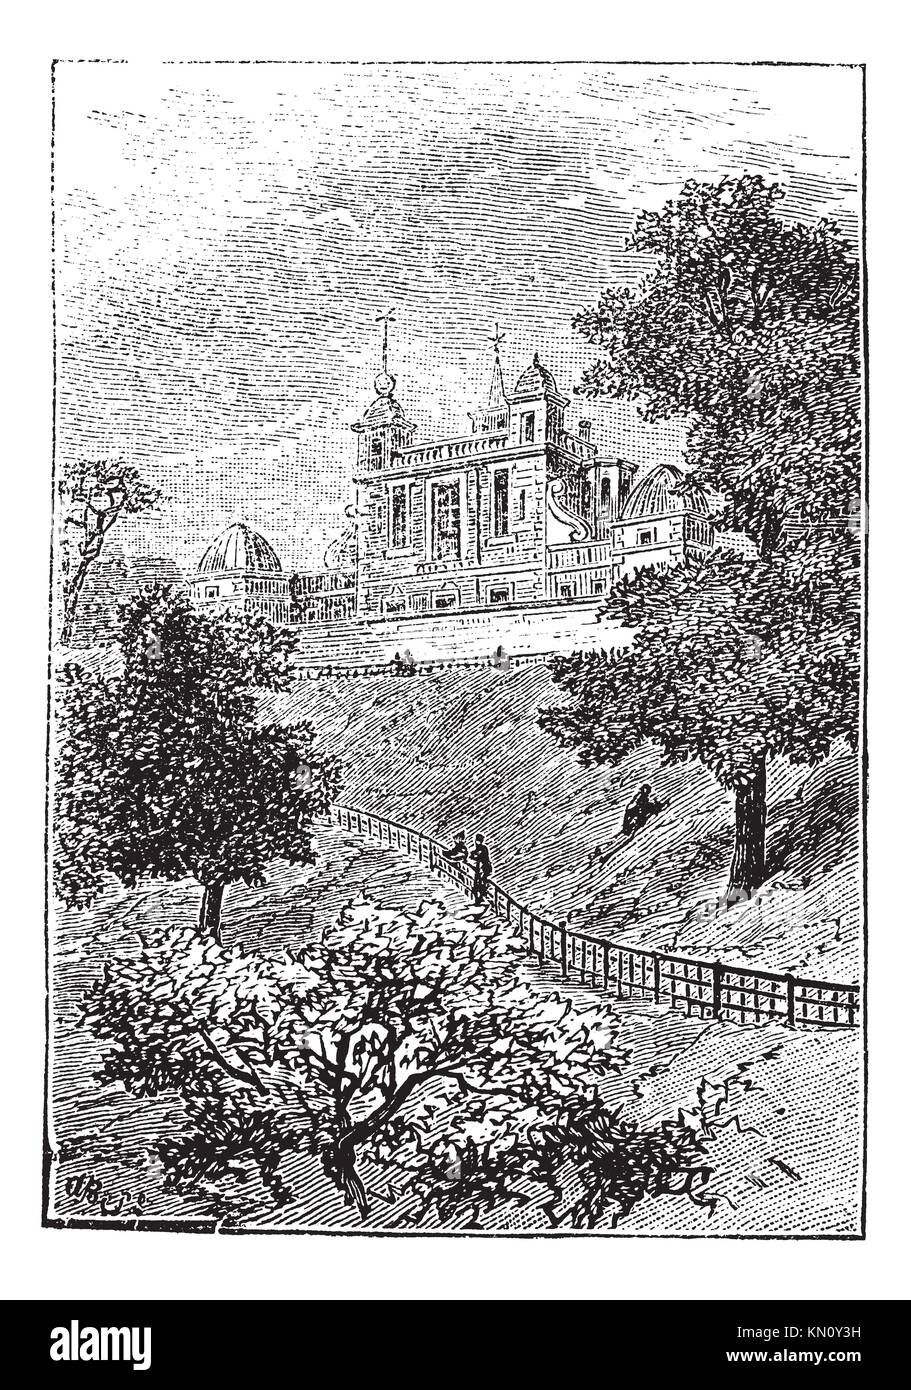 Royal Observatory in Greenwich, London, England, UK, vintage engraved illustration  Trousset encyclopedia 1886  - Stock Image